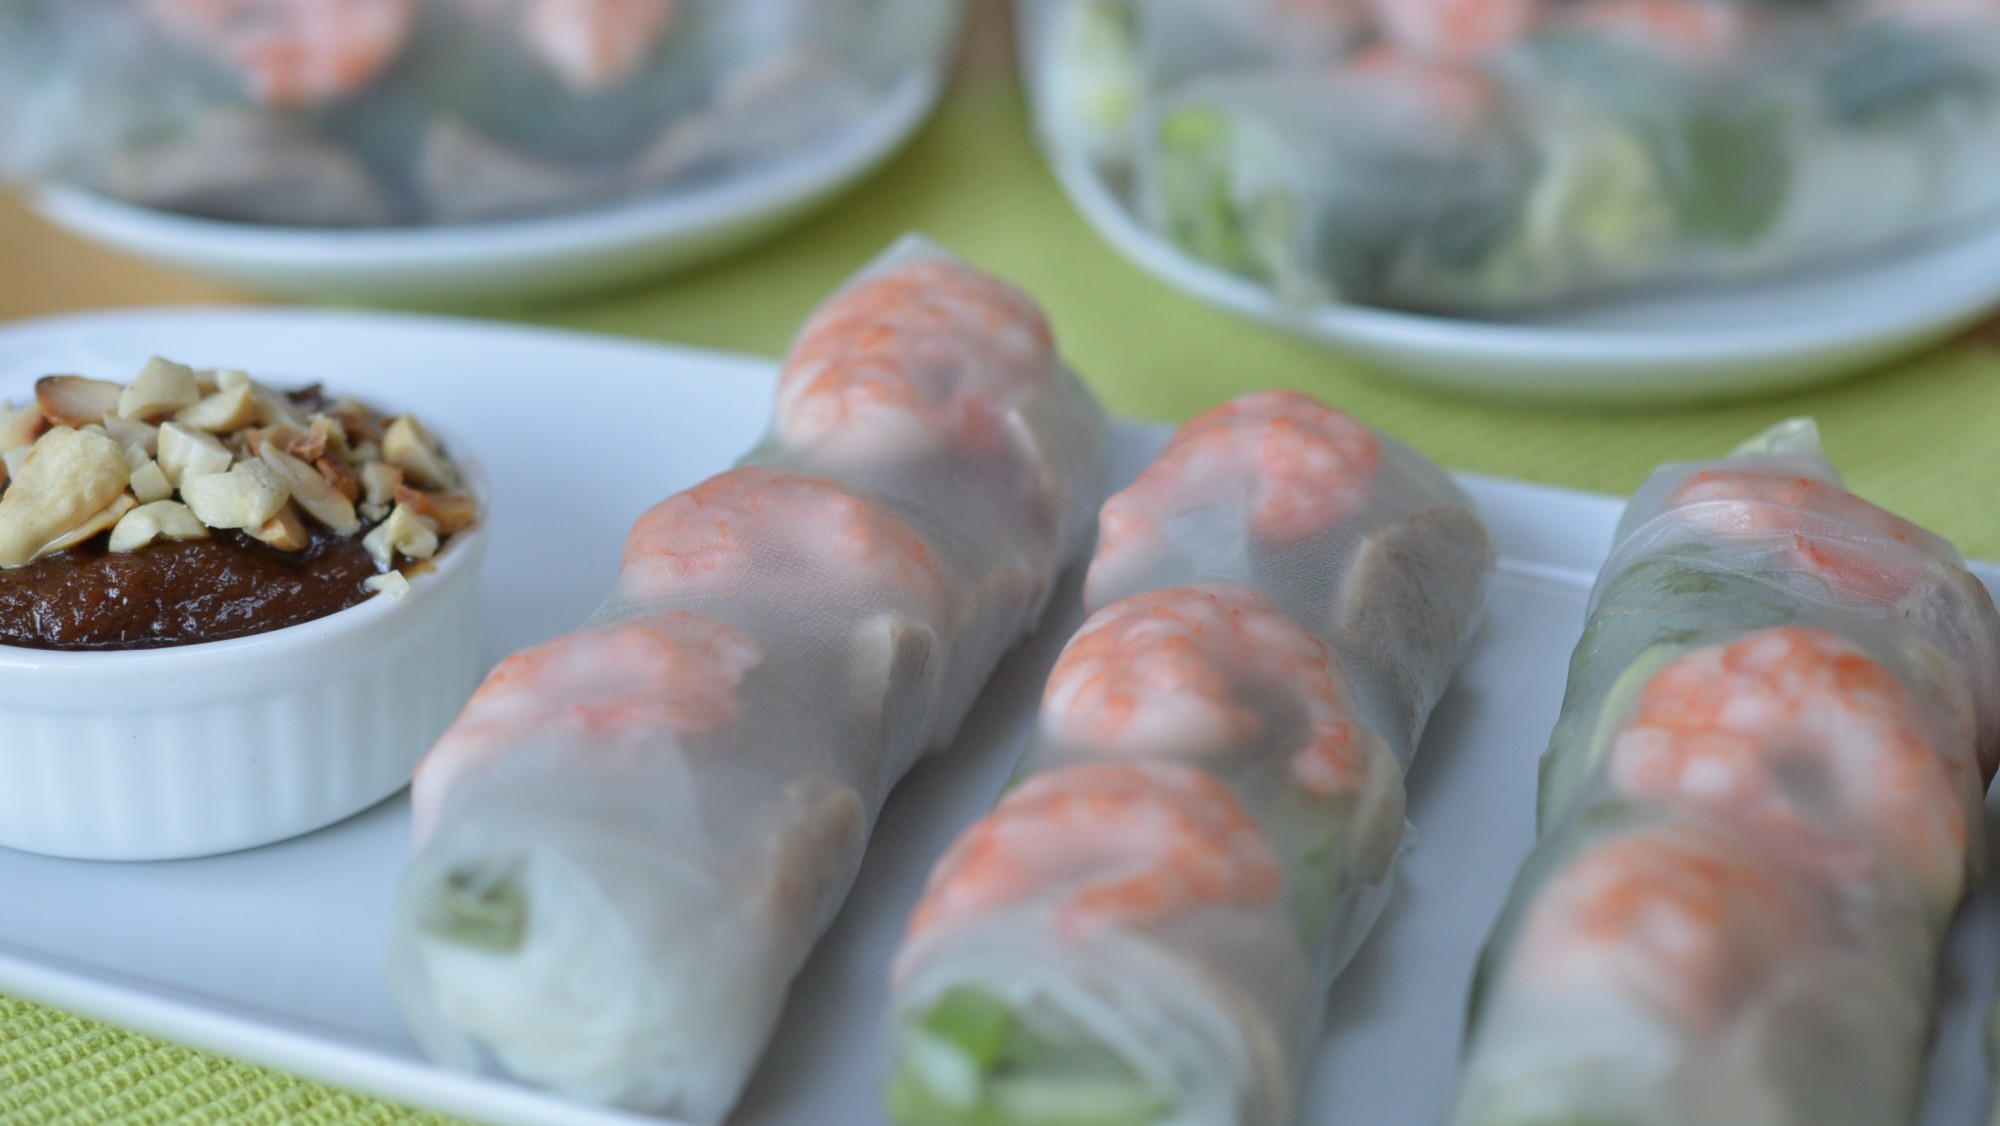 Swiss Chard And Spicy Peanut Sauce Spring Rolls Recipe — Dishmaps